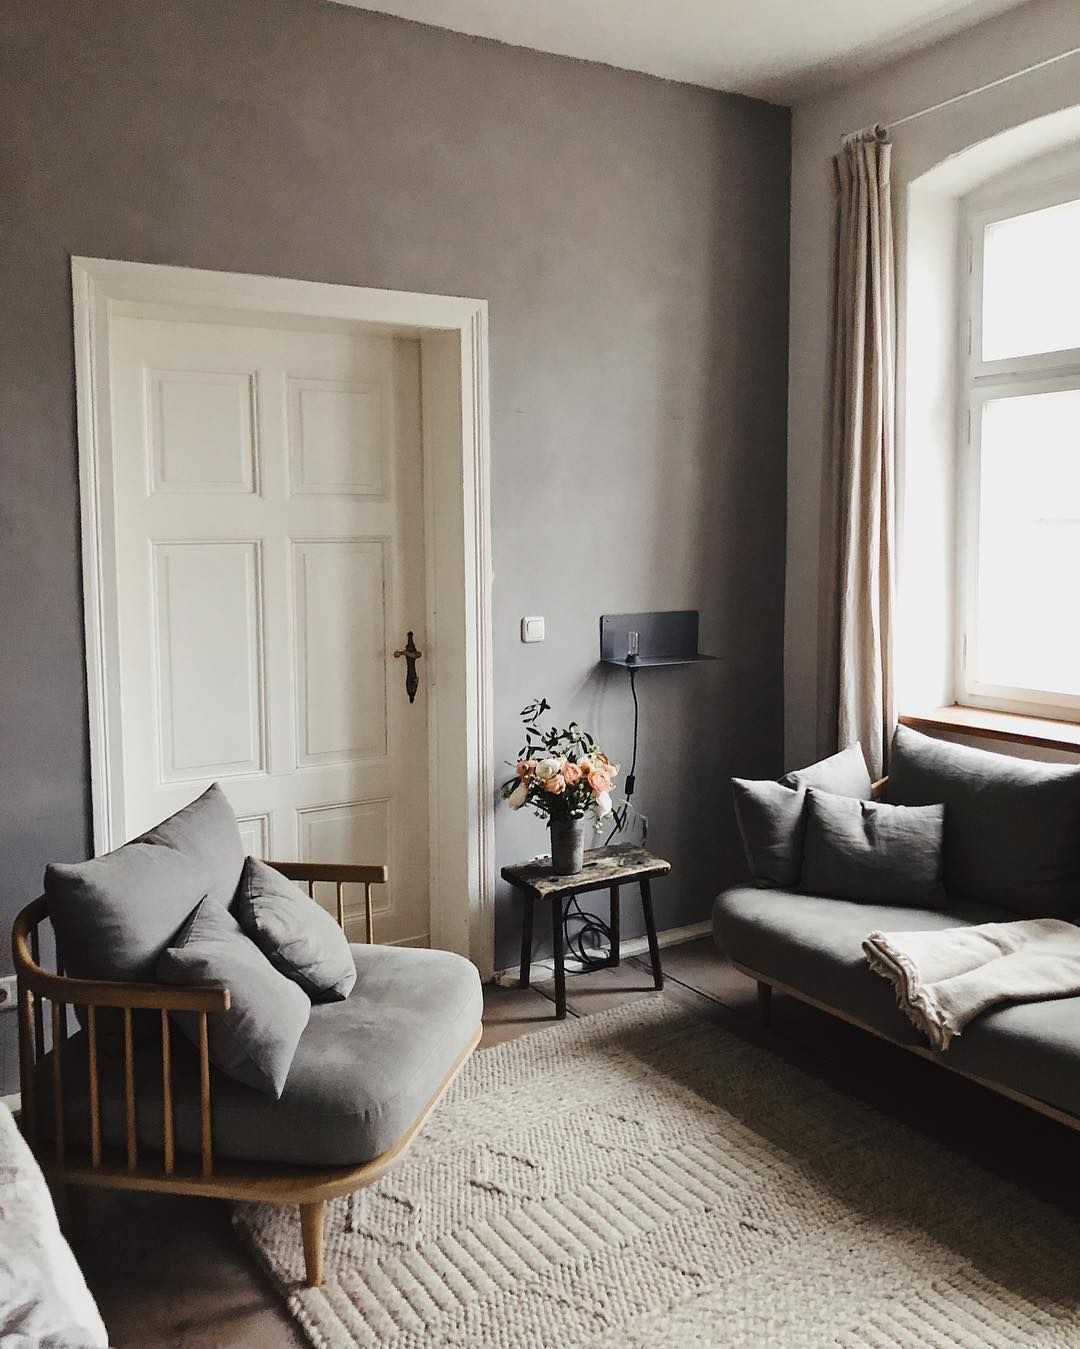 Laura Nora On Instagram Our Favorite Spot During Winter Time Interior123 Interiorforinspo In Living Room Scandinavian Living Room Interior Home